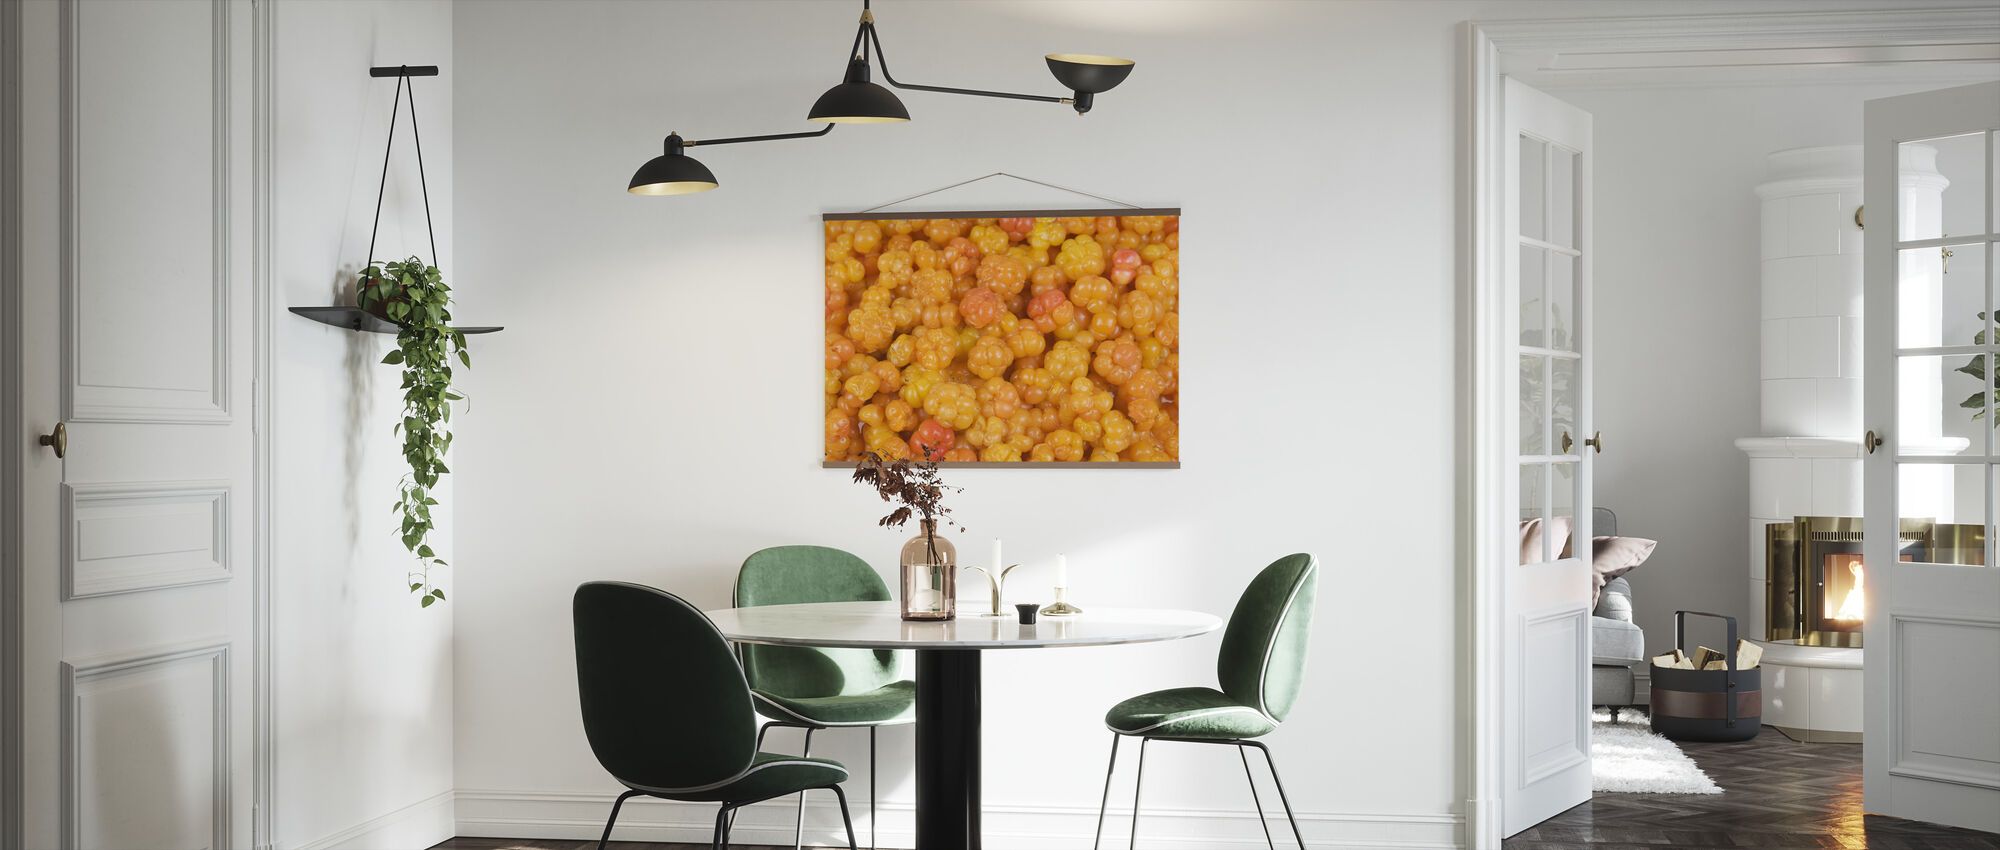 Cloudberry - Poster - Keuken